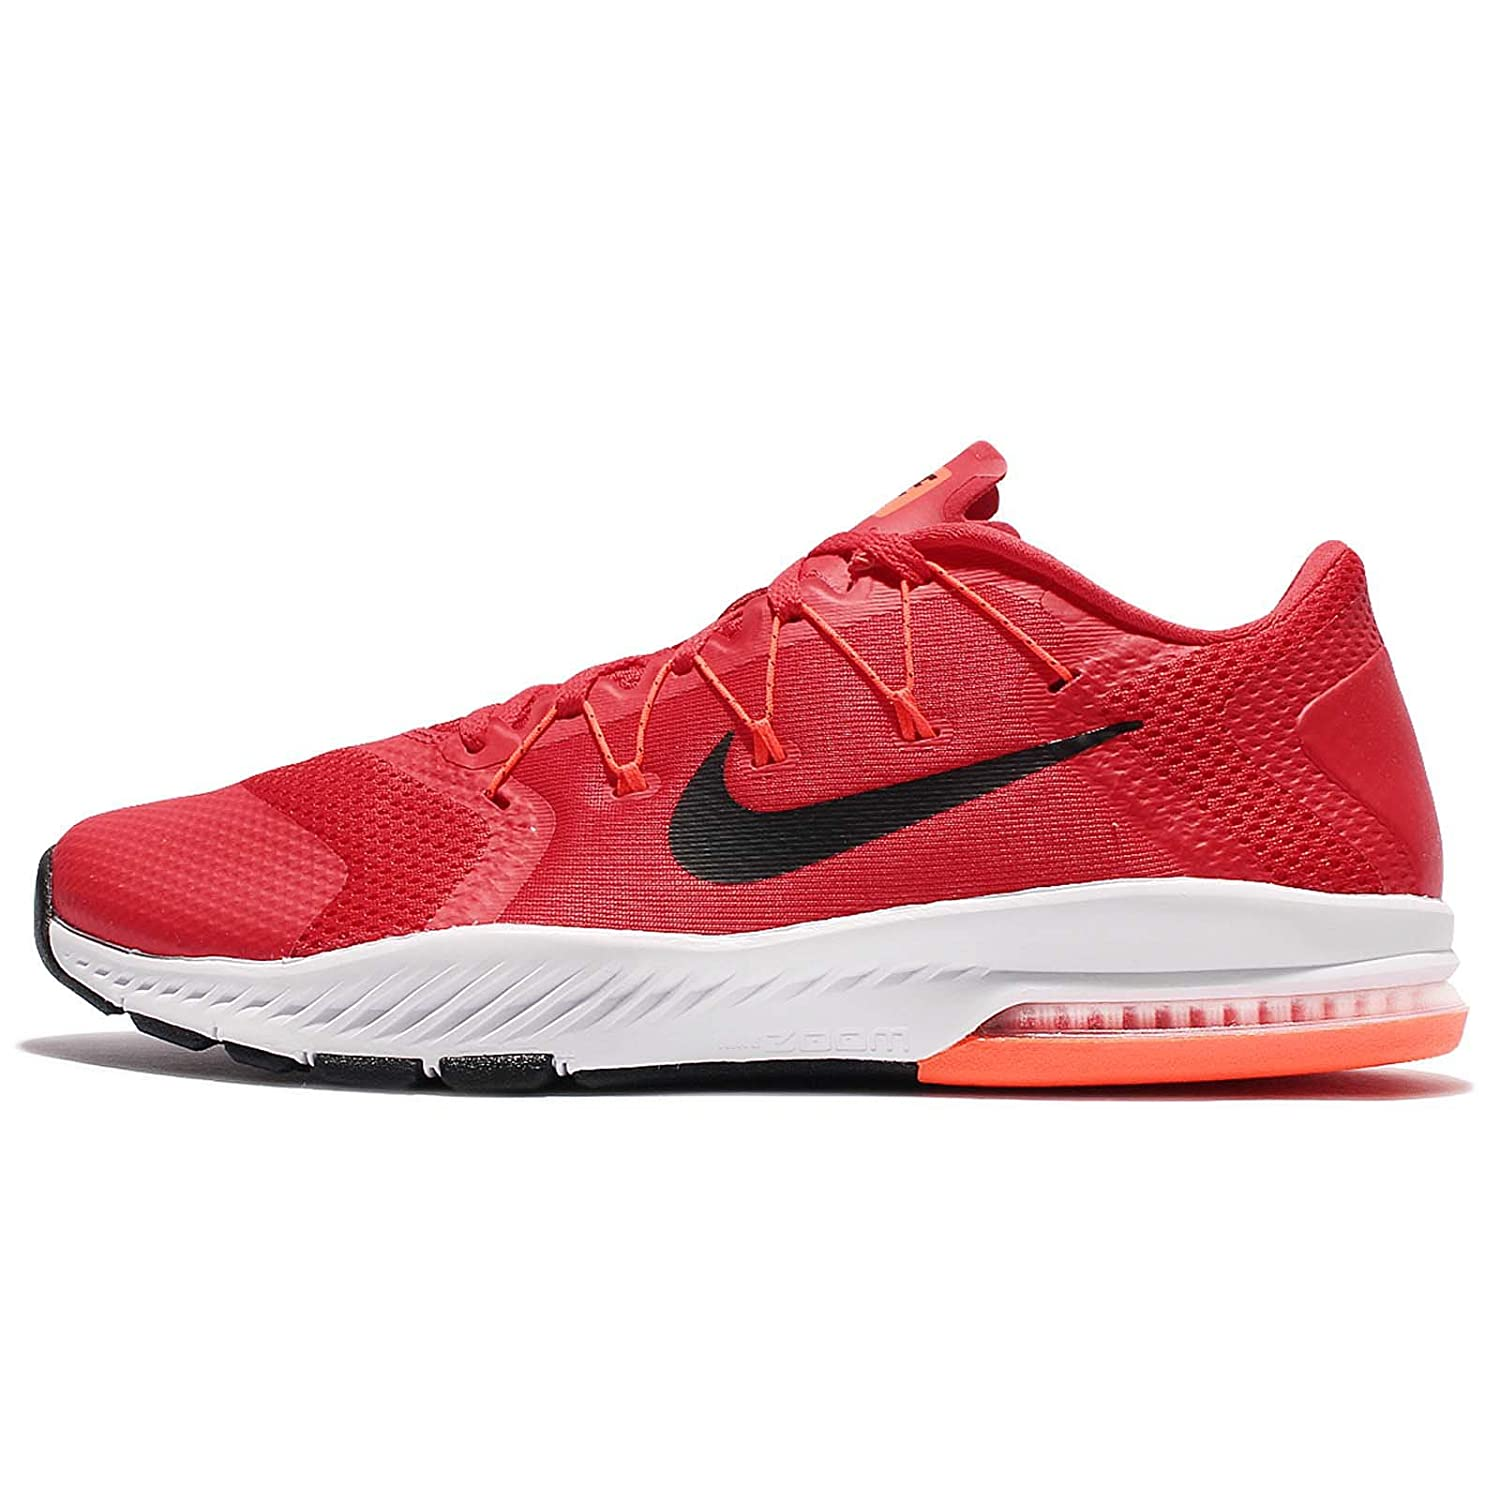 NIKE Air Zoom Train Complete Mens Running Trainers 882119 Sneakers Shoes B01DLD53IQ 7.5 D(M) US|Action Red/Black-total Crimson